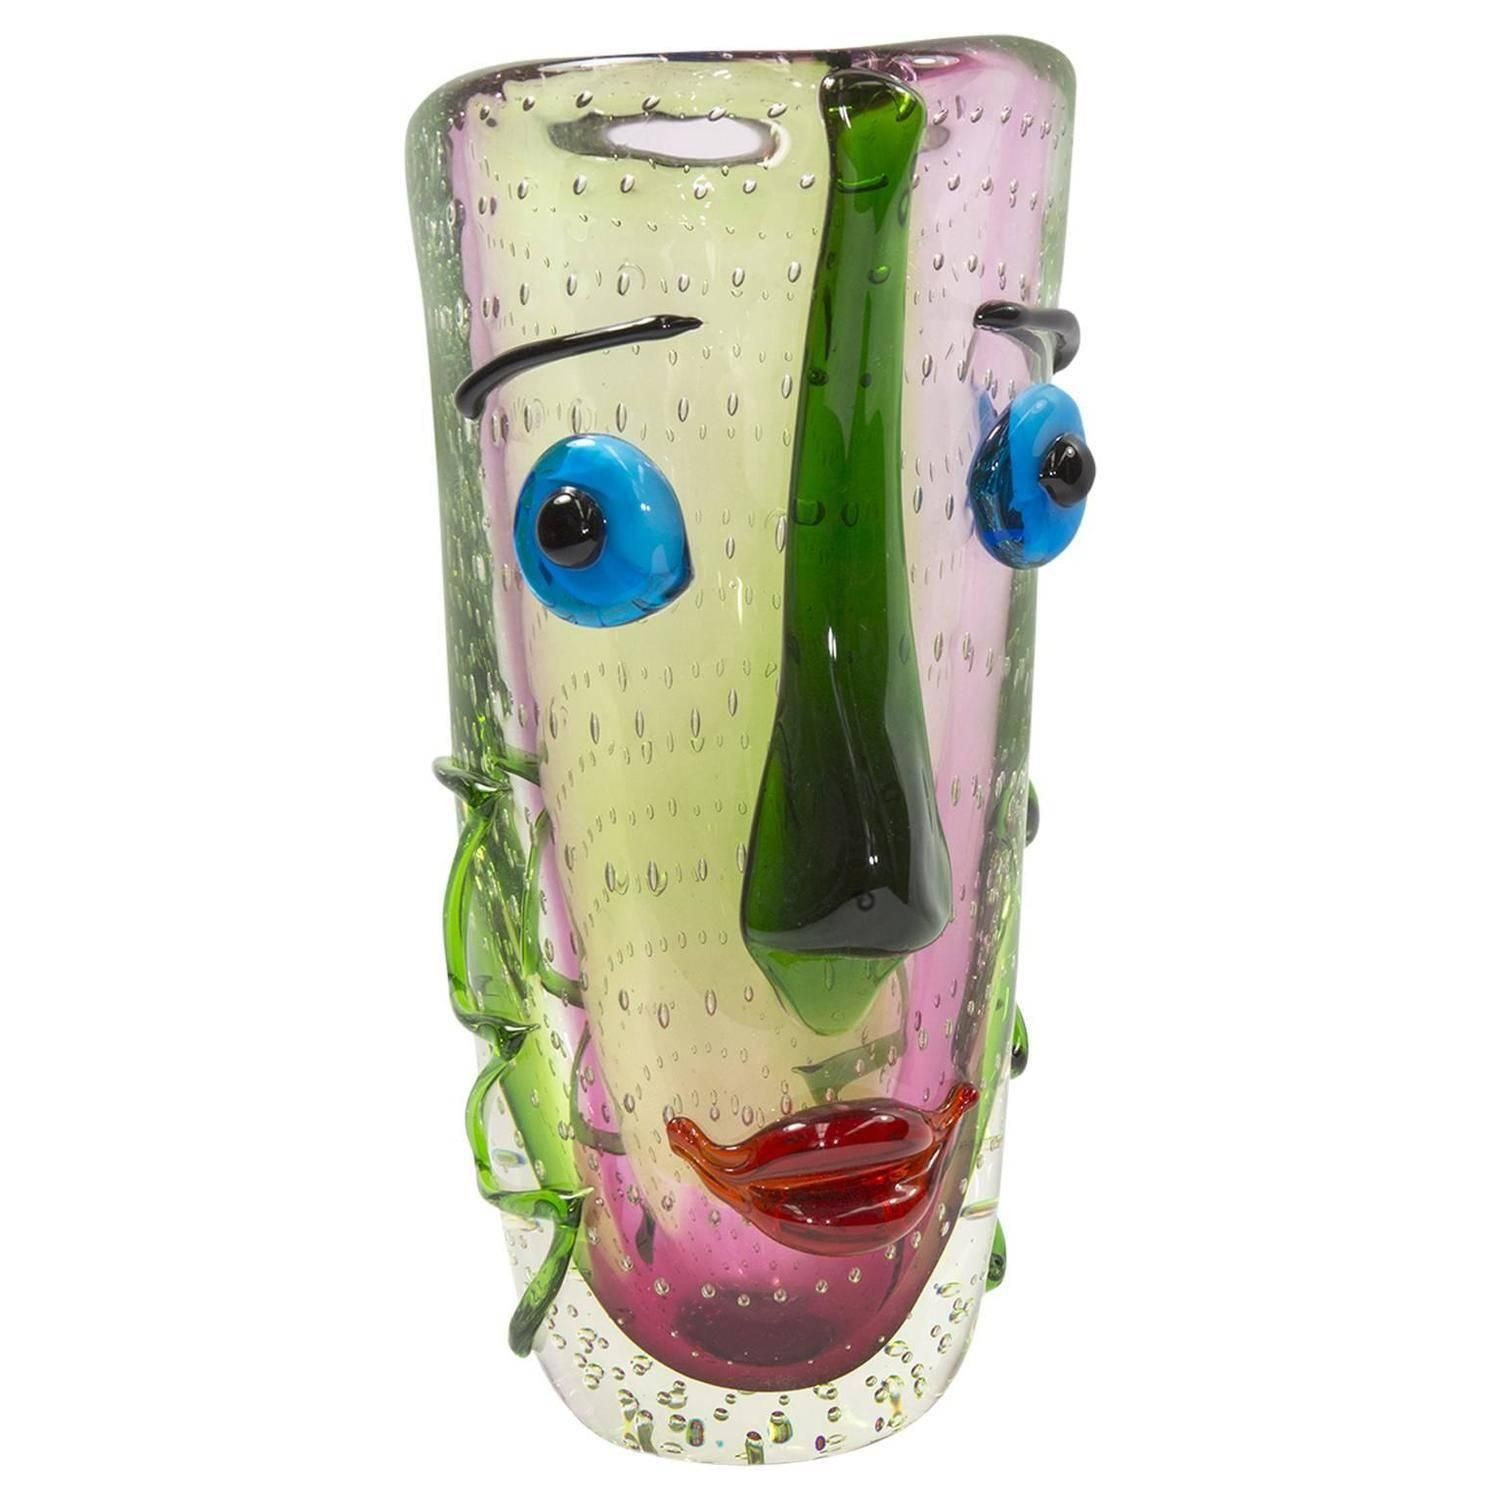 picasso vase painting of fabulous large murano multicolored abstract picasso face art glass with regard to fabulous large murano multicolored abstract picasso face art glass vase